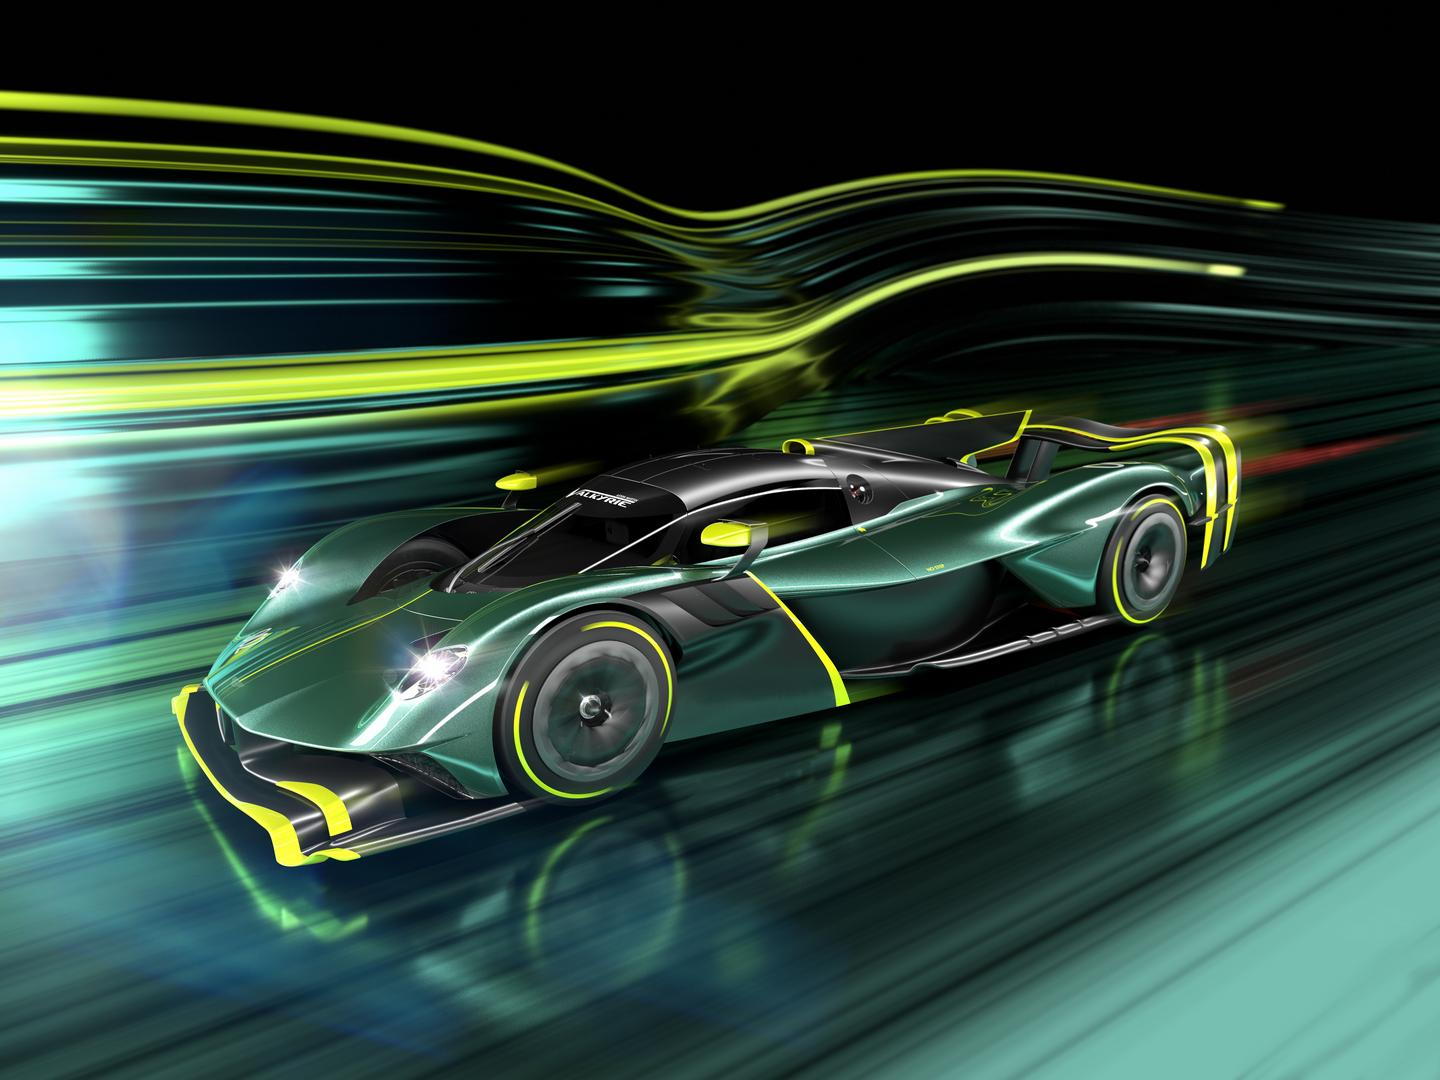 Aston Martin Valkyrie AMR PRO: Deliveries of Hardcore Racer to Start this Year